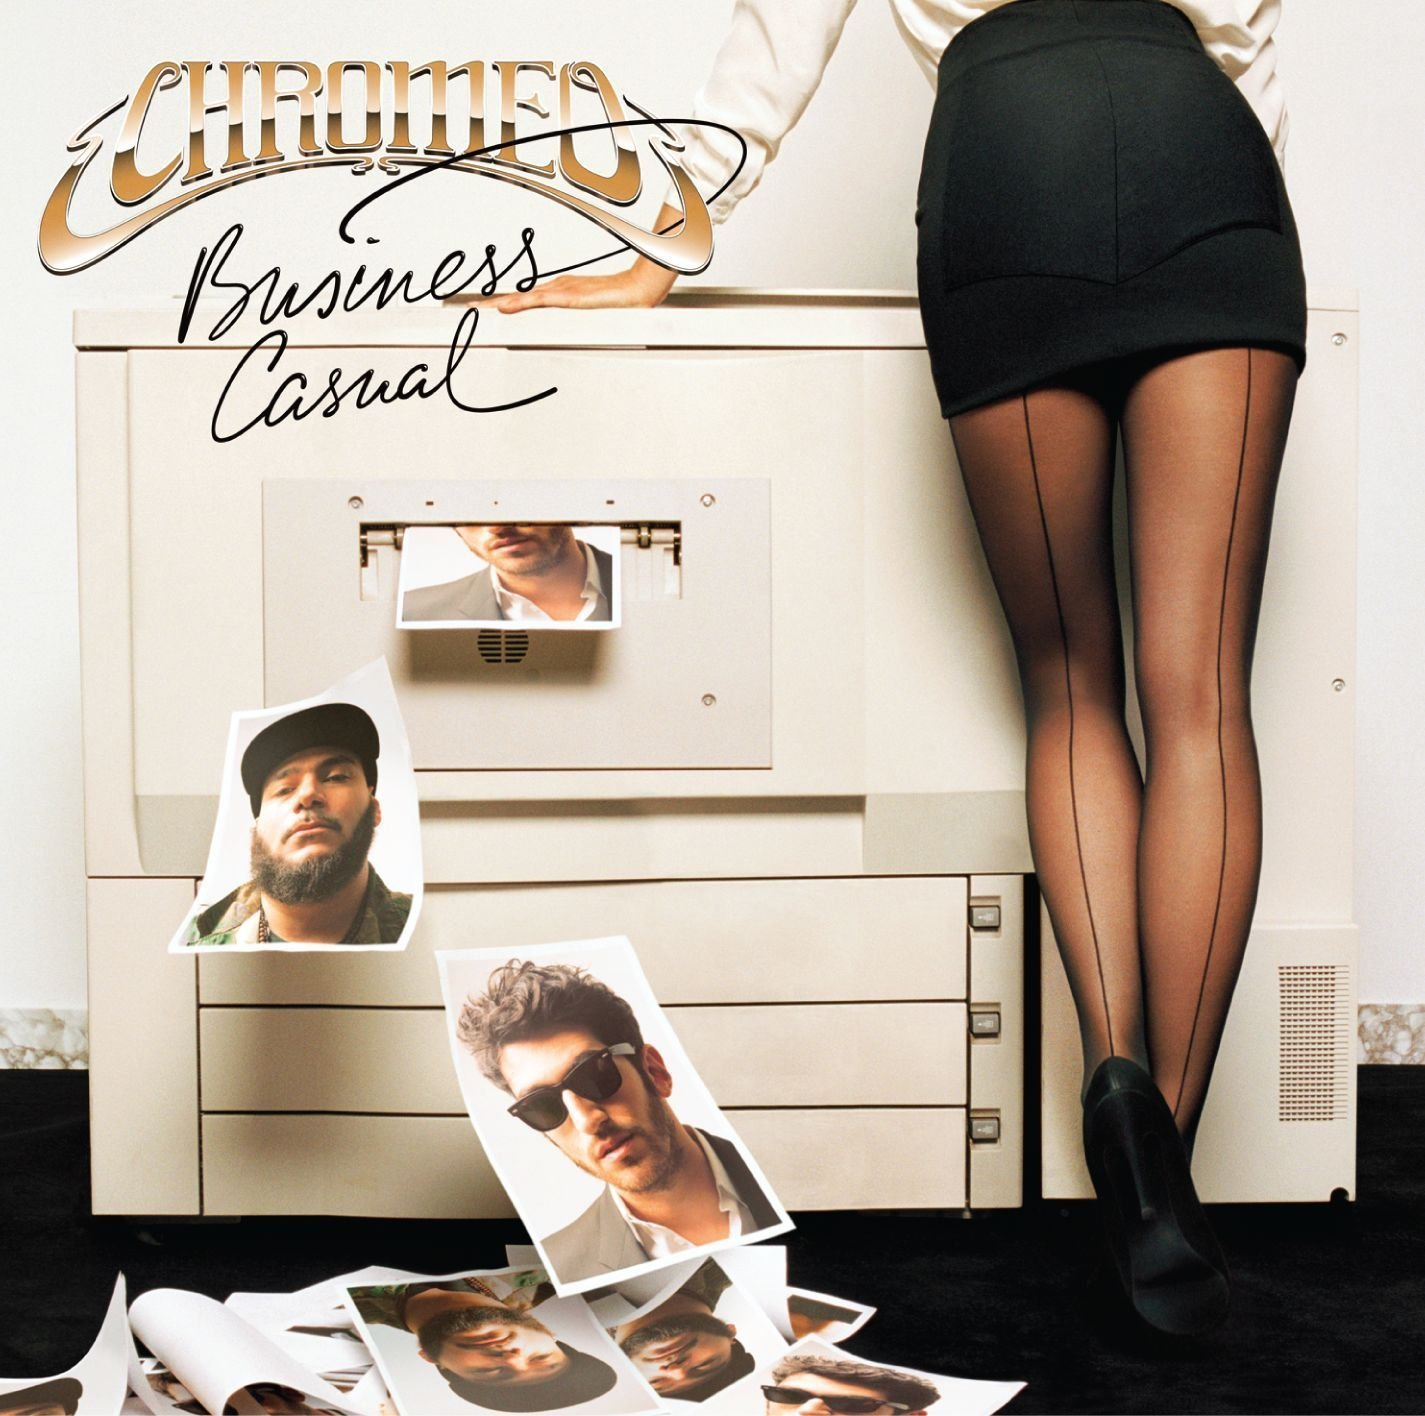 Chromeo, Business Casual